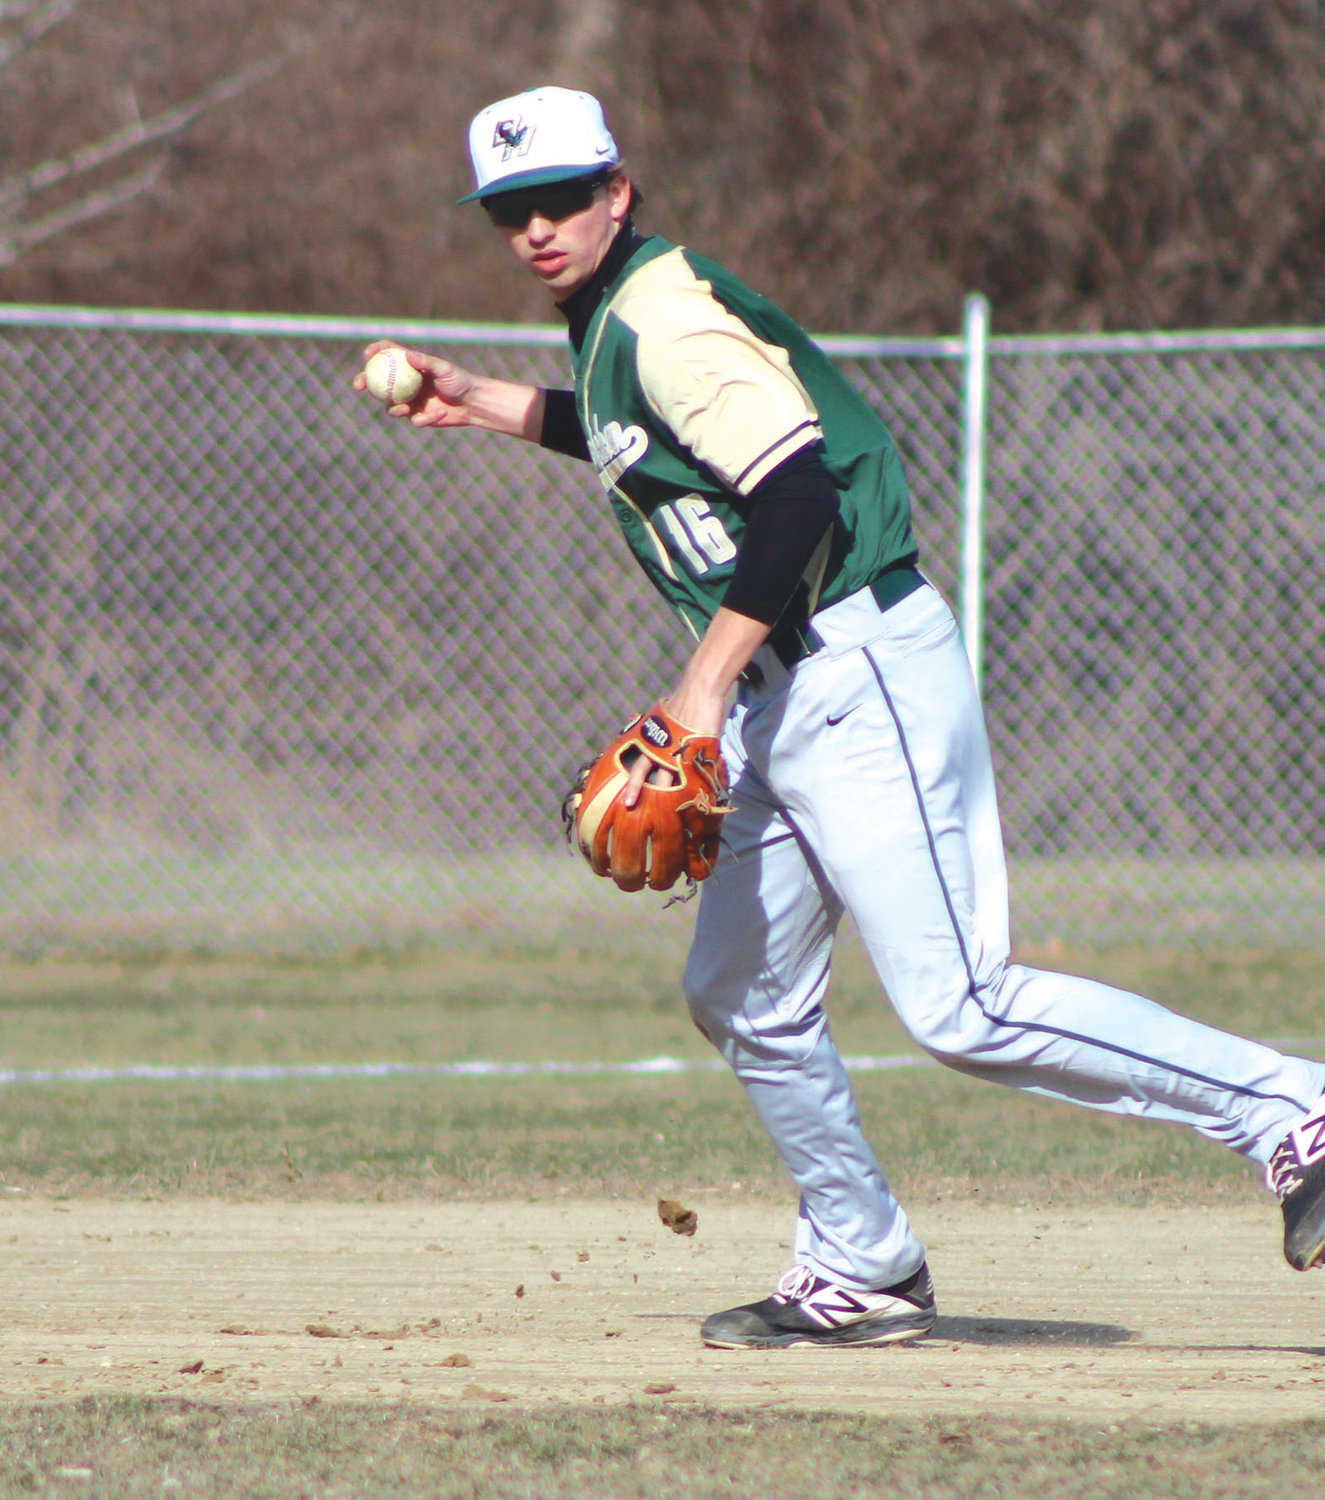 PLAYING THE FIELD: Bishop Hendricken's Colin Lemieux throws to first base in the second inning against Cumberland last week. The Hawks cruised to a 19-5 victory.